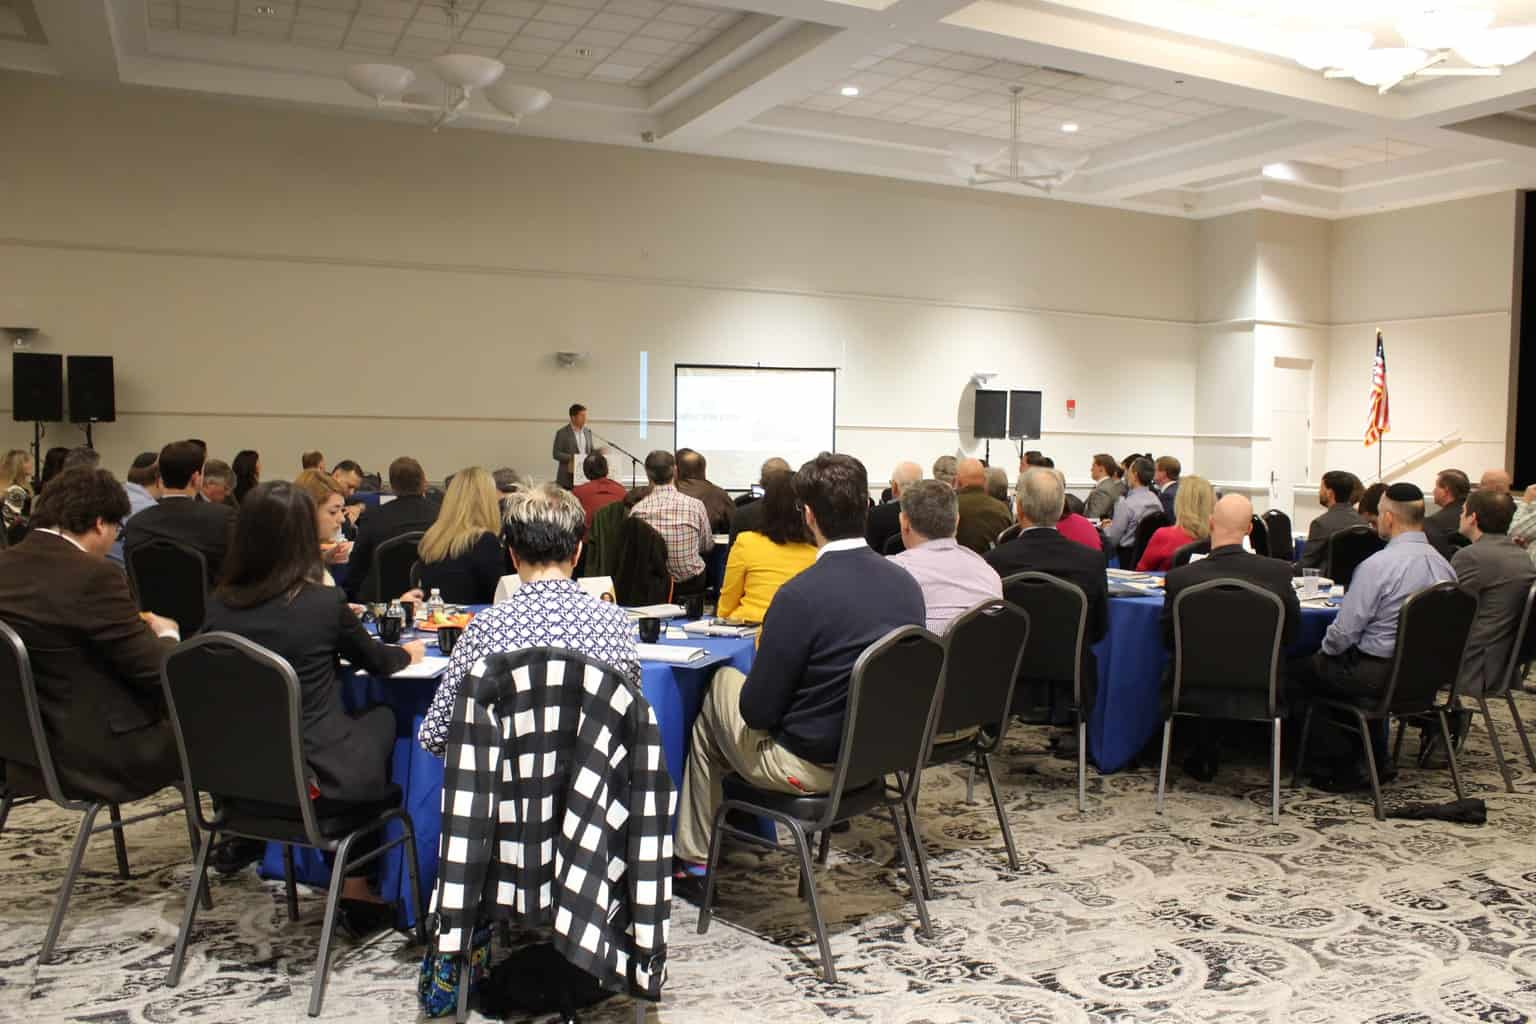 jewish-foundation-of-memphis-hosted-impact-investing-seminar-for-packed-house